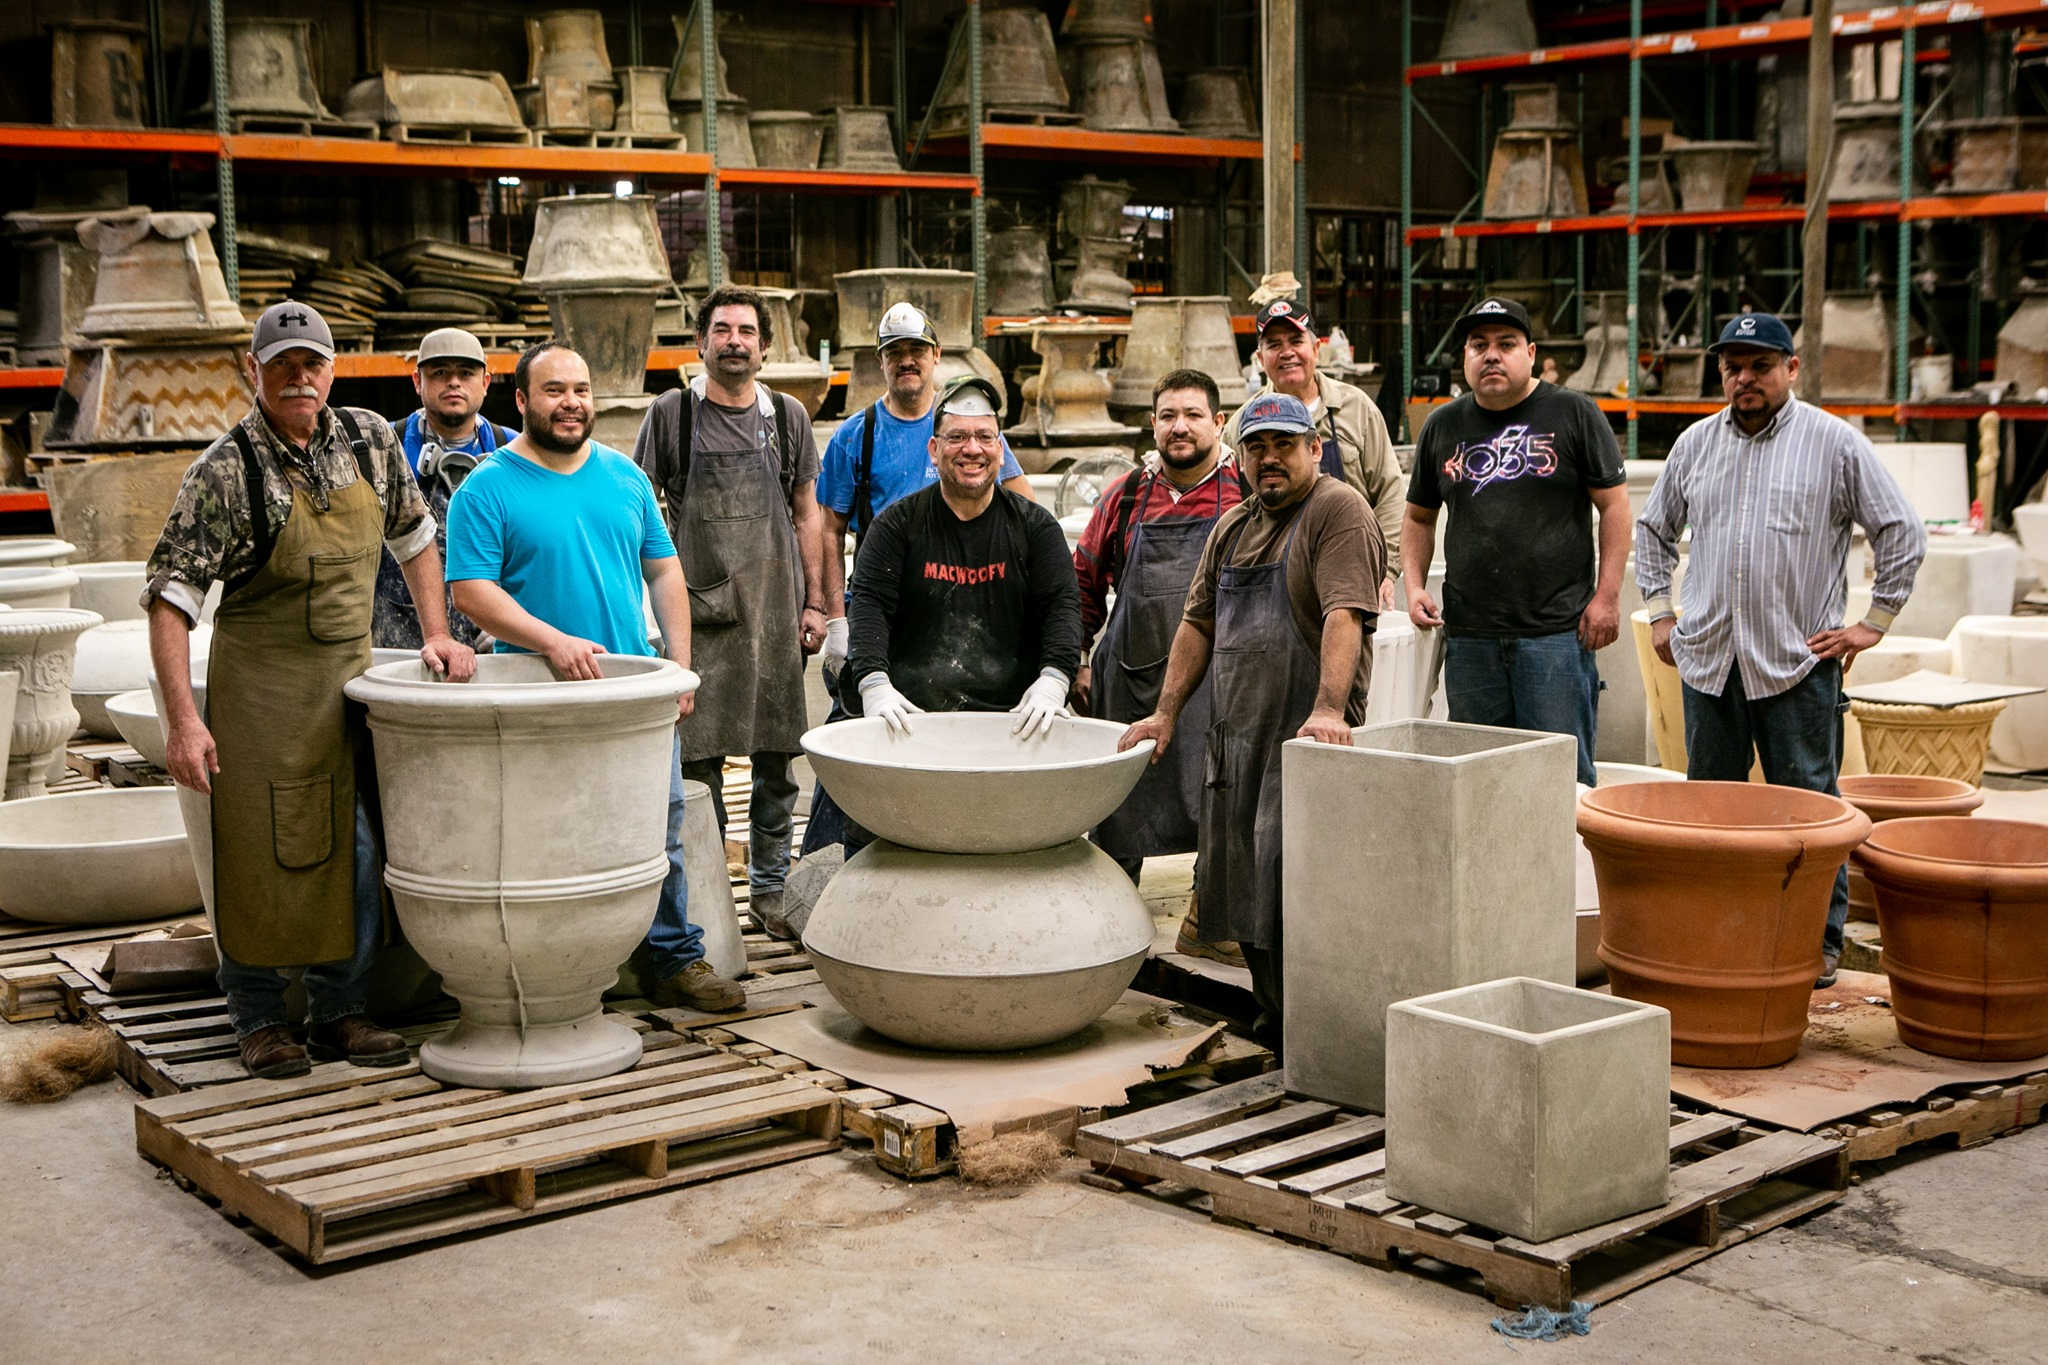 Jackson Cast Stone products are hand crafted and made in the USA